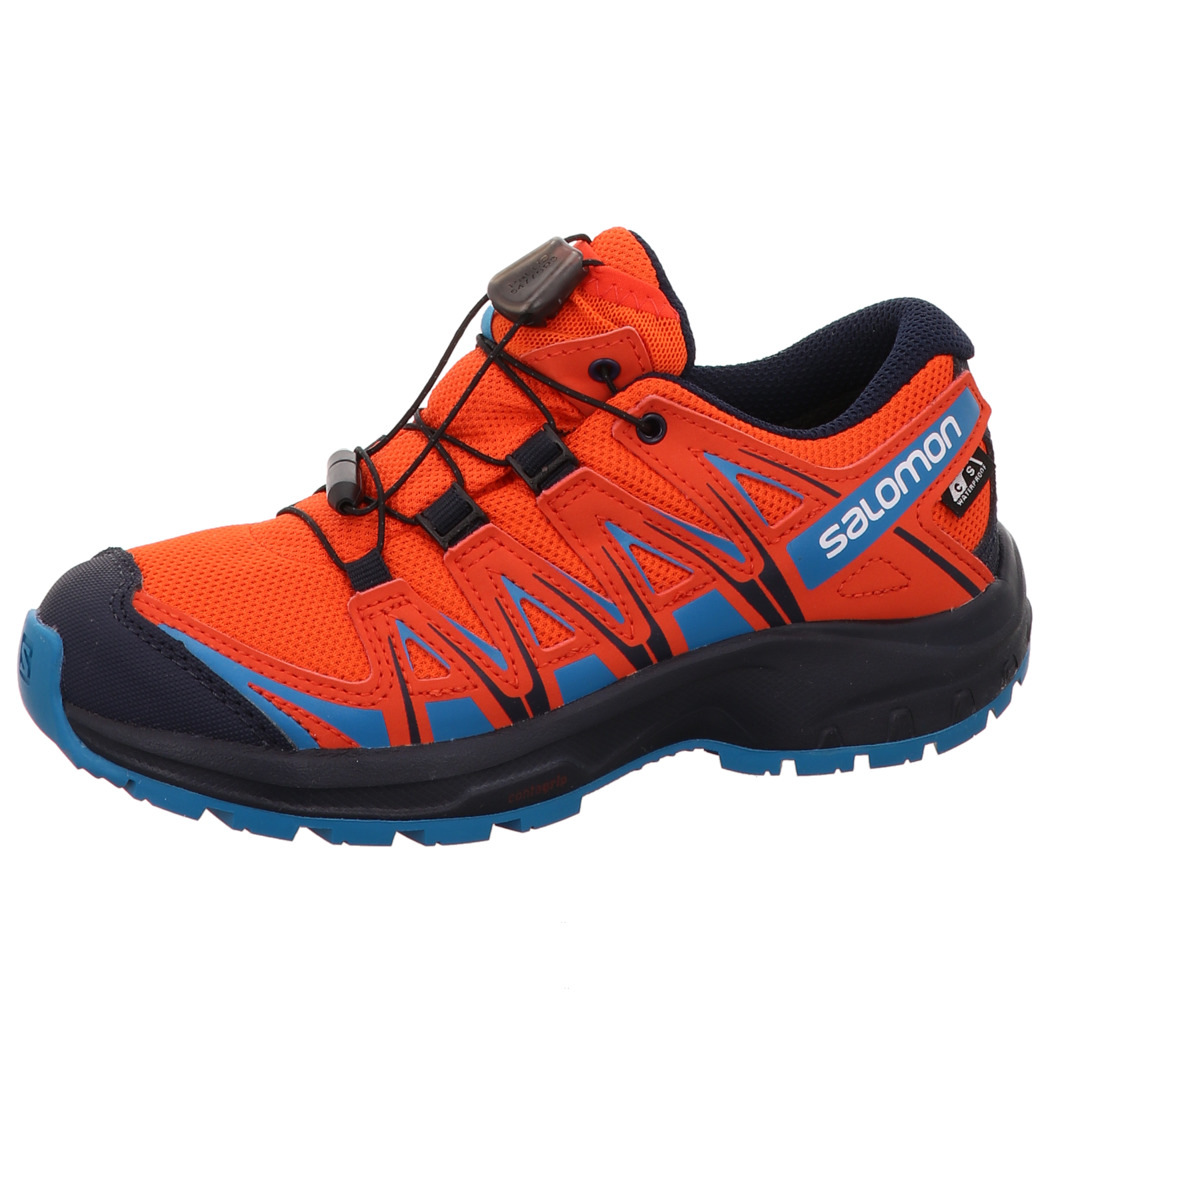 Kinder Sportschuh, XA PRO 3D CSWP J Salomon Gore Tex Orange